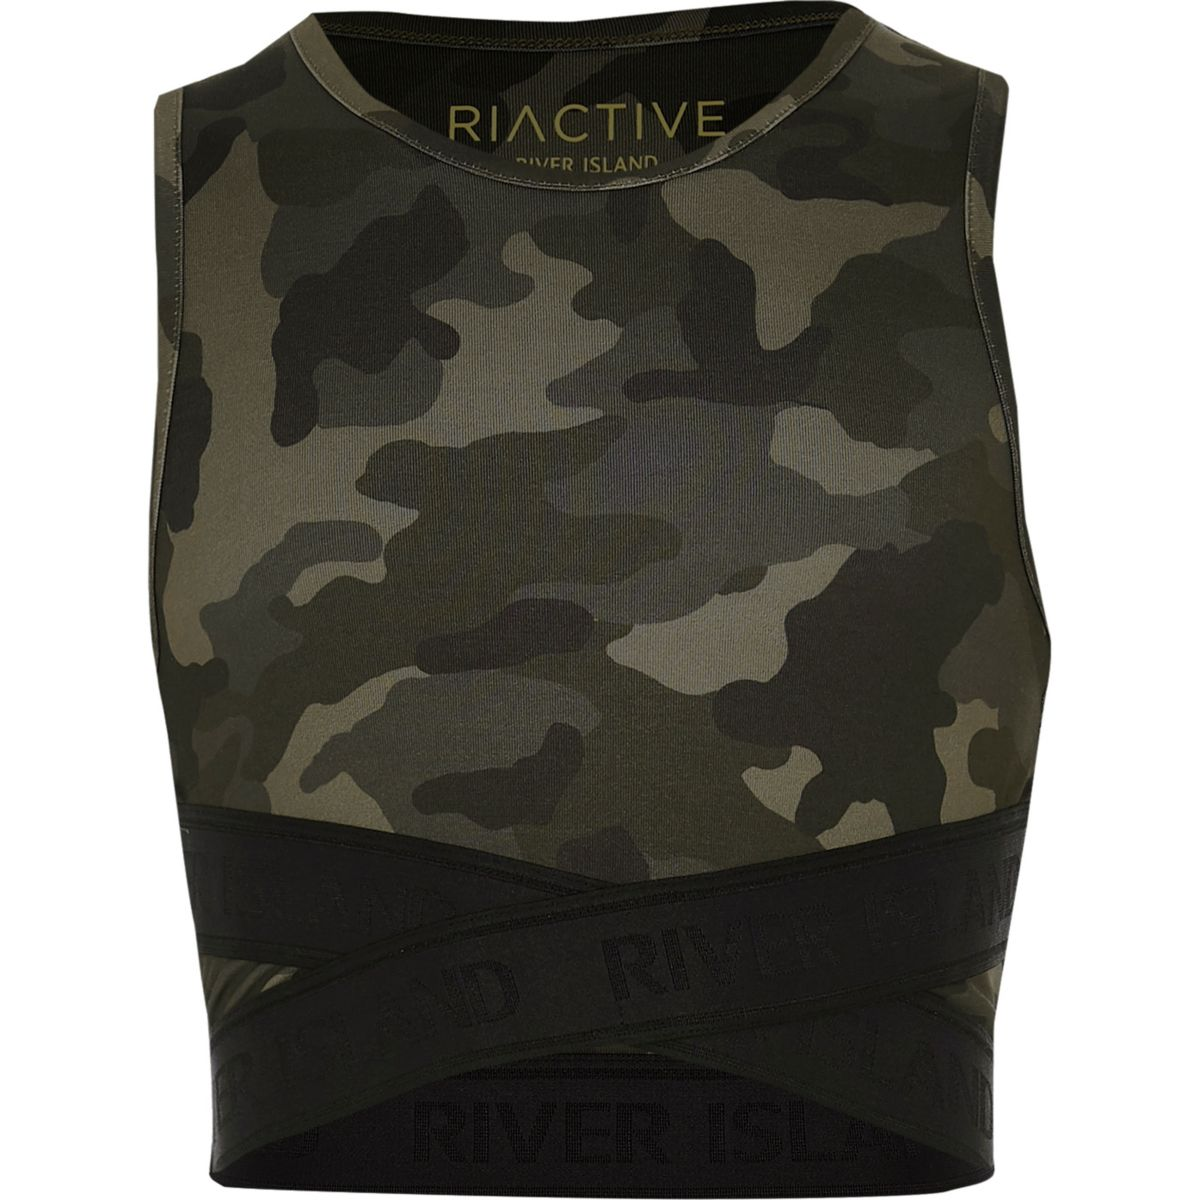 Girls RI Active khaki camo elastic crop top